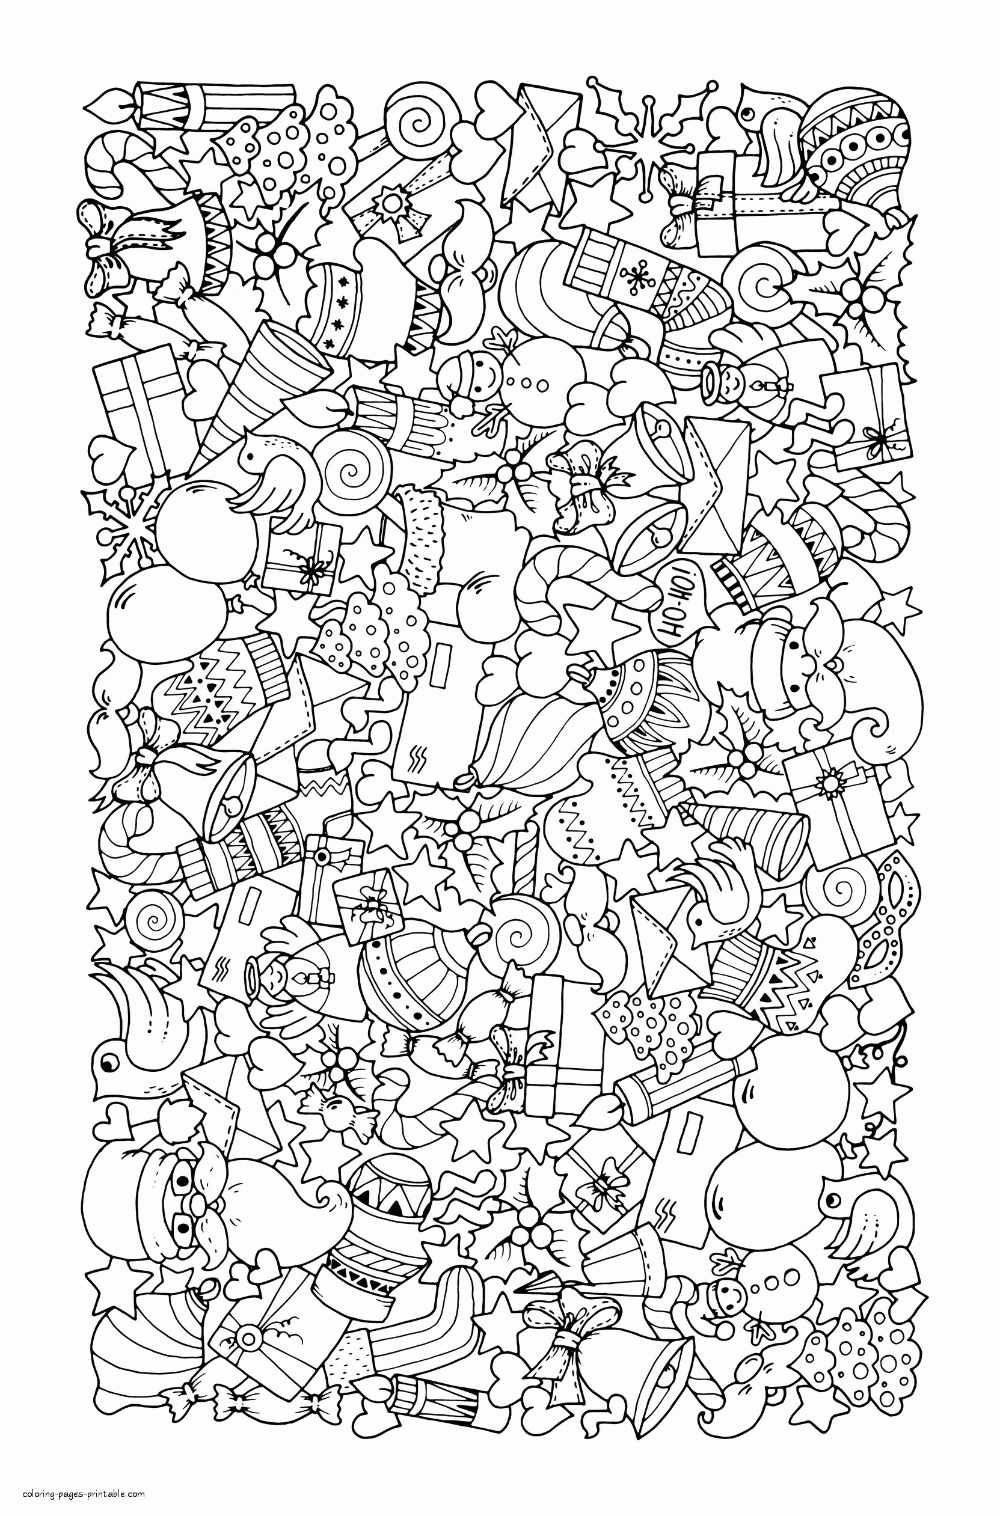 Christmas Doodle Coloring Sheet For Adults Christmas Pictures Printable Christmas Coloring Pages Christmas Coloring Printables Merry Christmas Coloring Pages